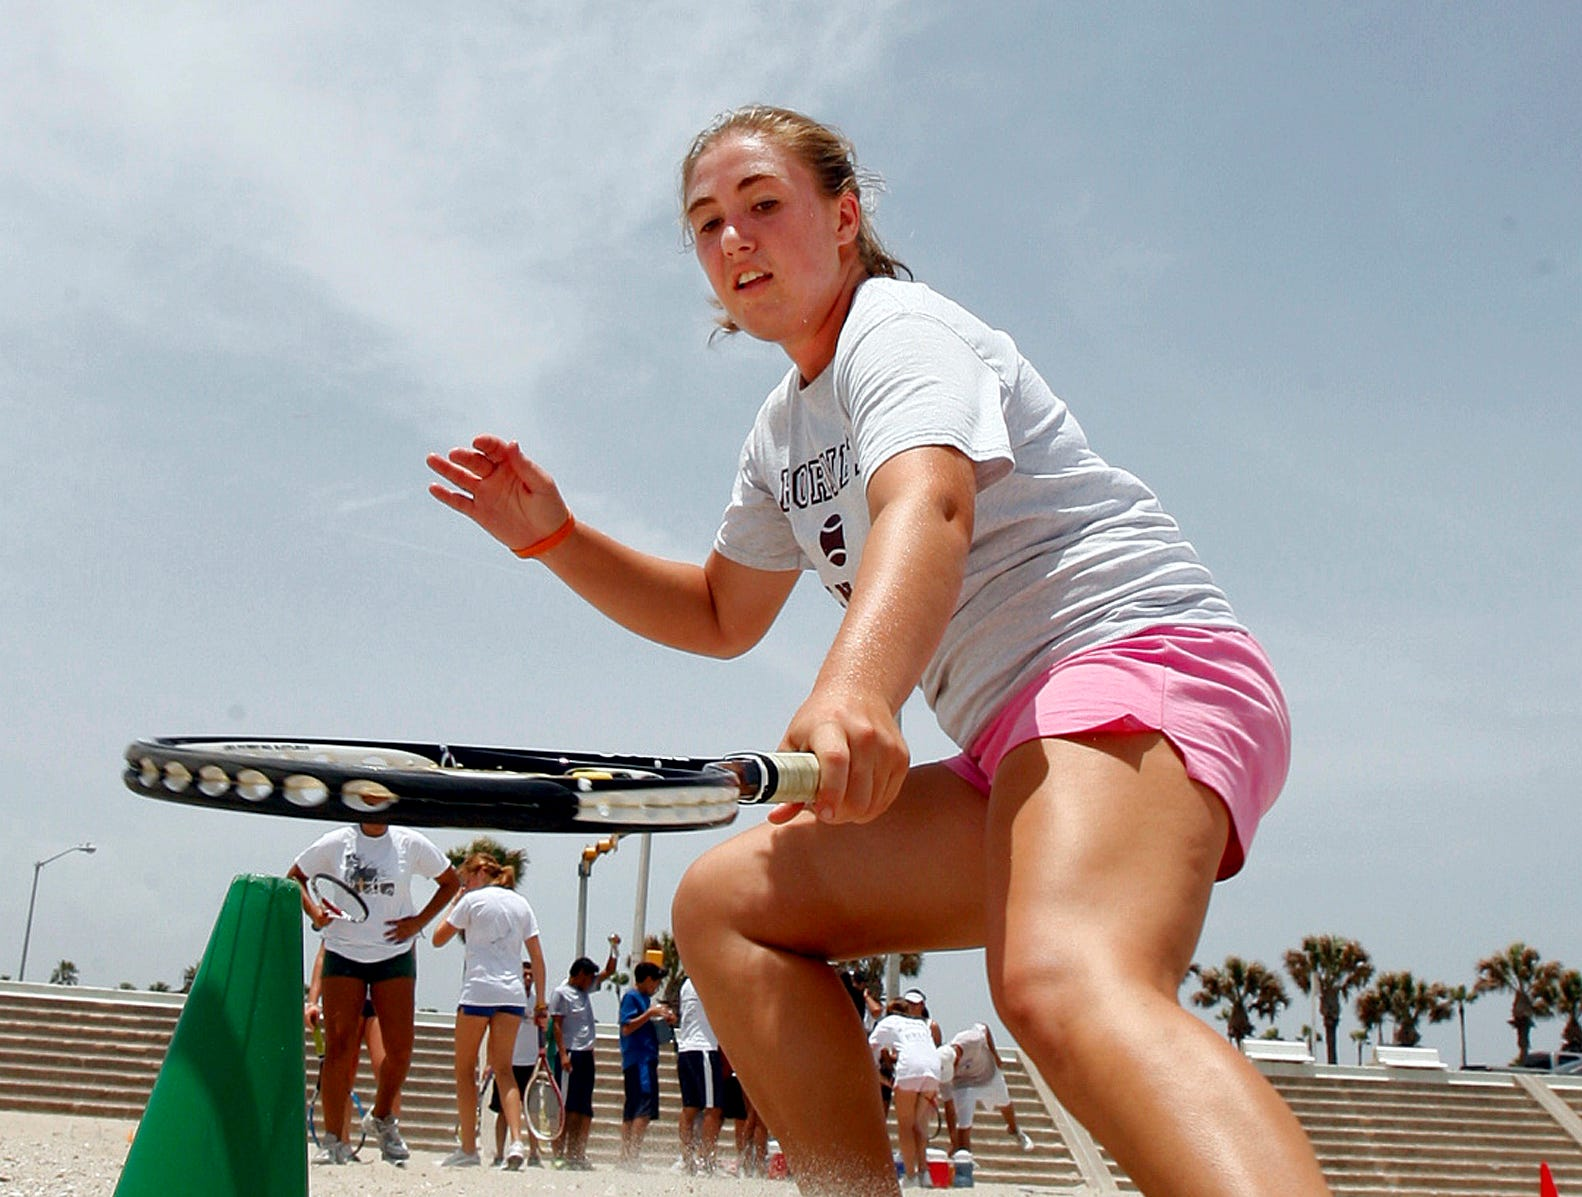 Kemper Christensen, a Flour Bluff high school senior, participates in a tennis camp on McGee Beach in downtown Corpus Christi in July 2009.